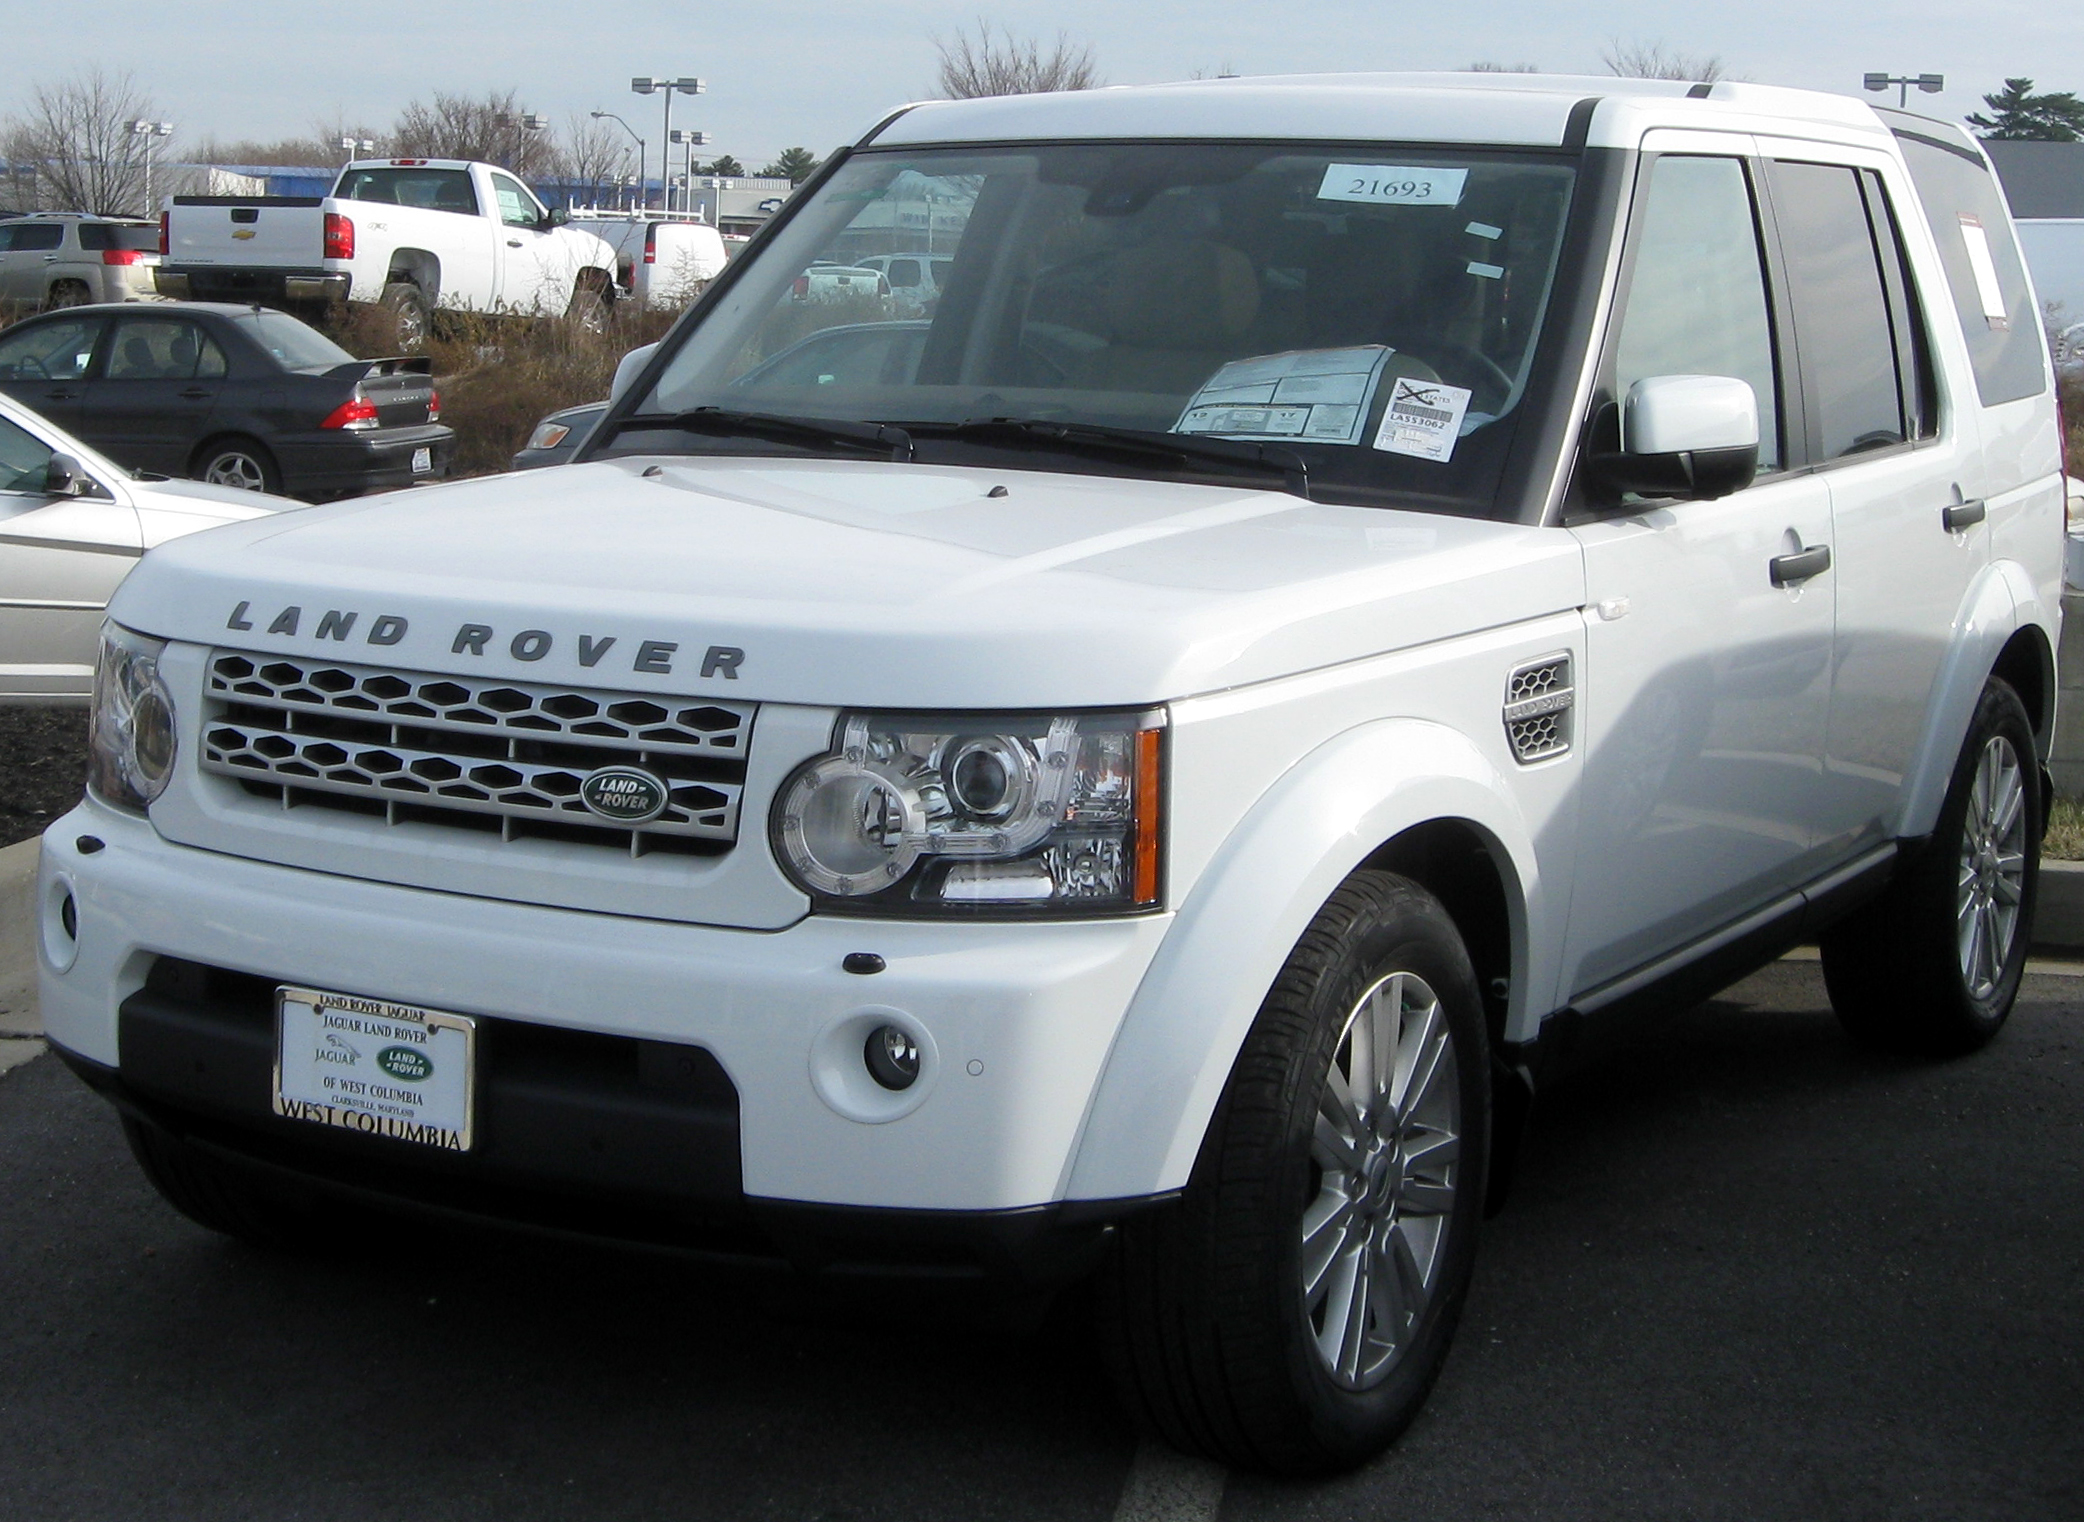 sale nigel bubazuta land lots extras showthread hse for lux of rover w landrover